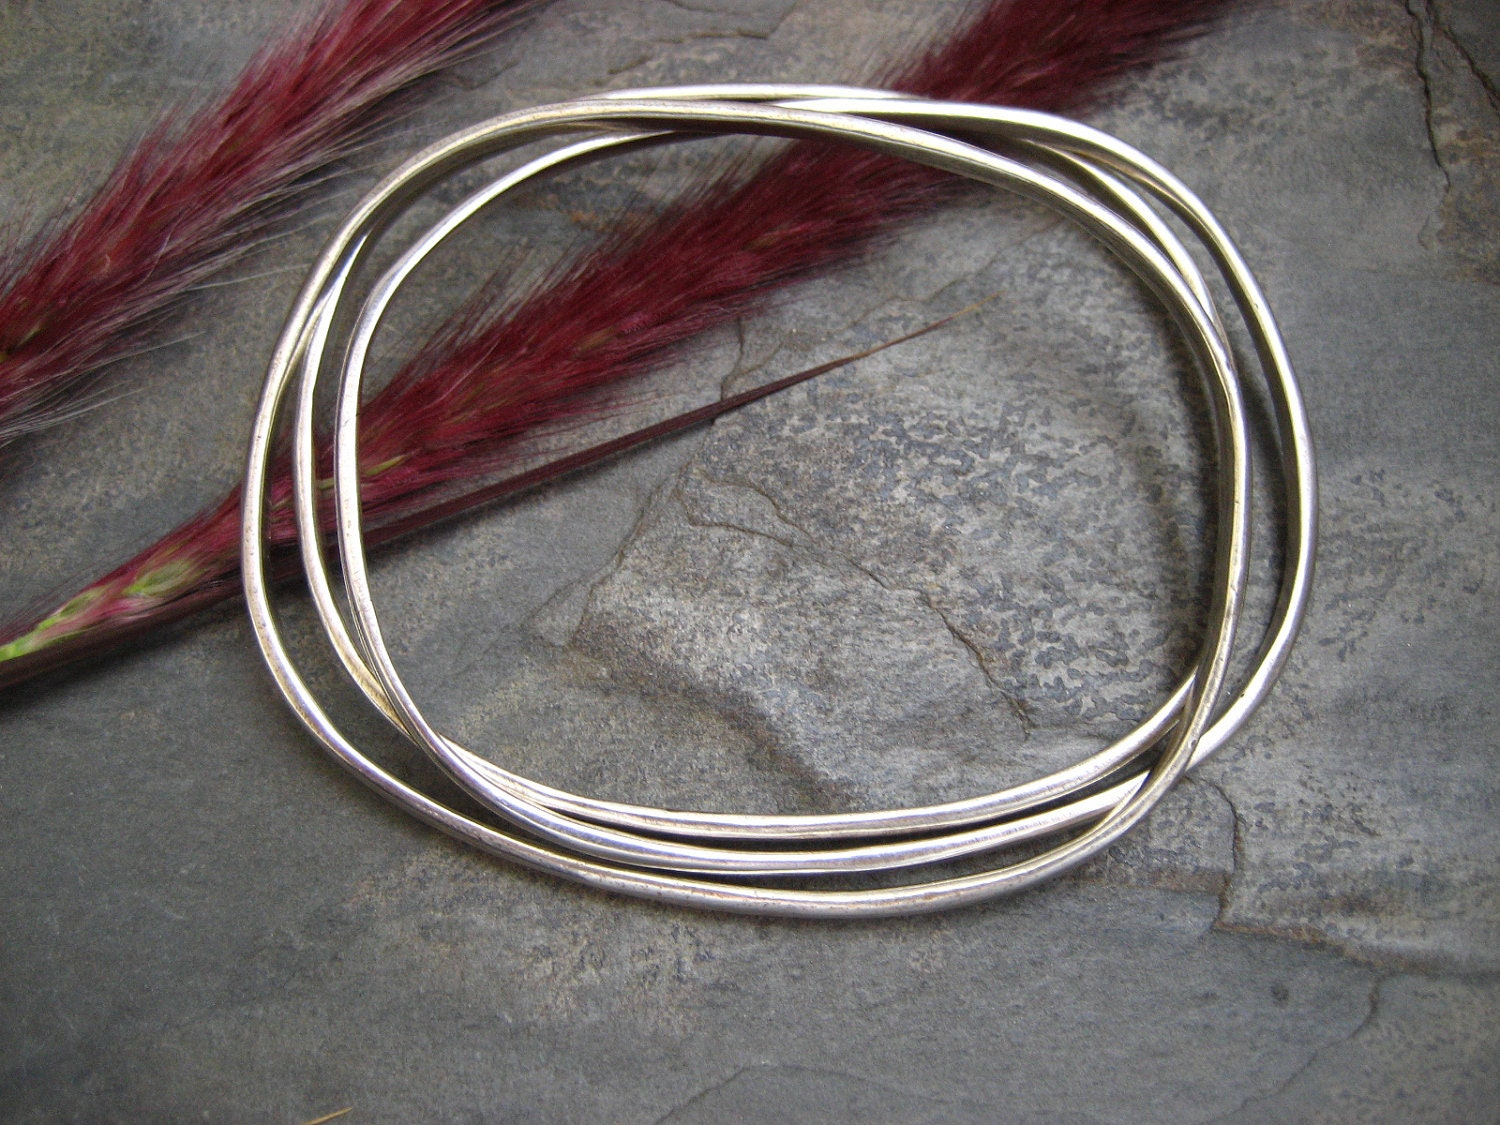 Oval silver bangles - sterling silver - heavy weight - set of 3 - ElfiRoose